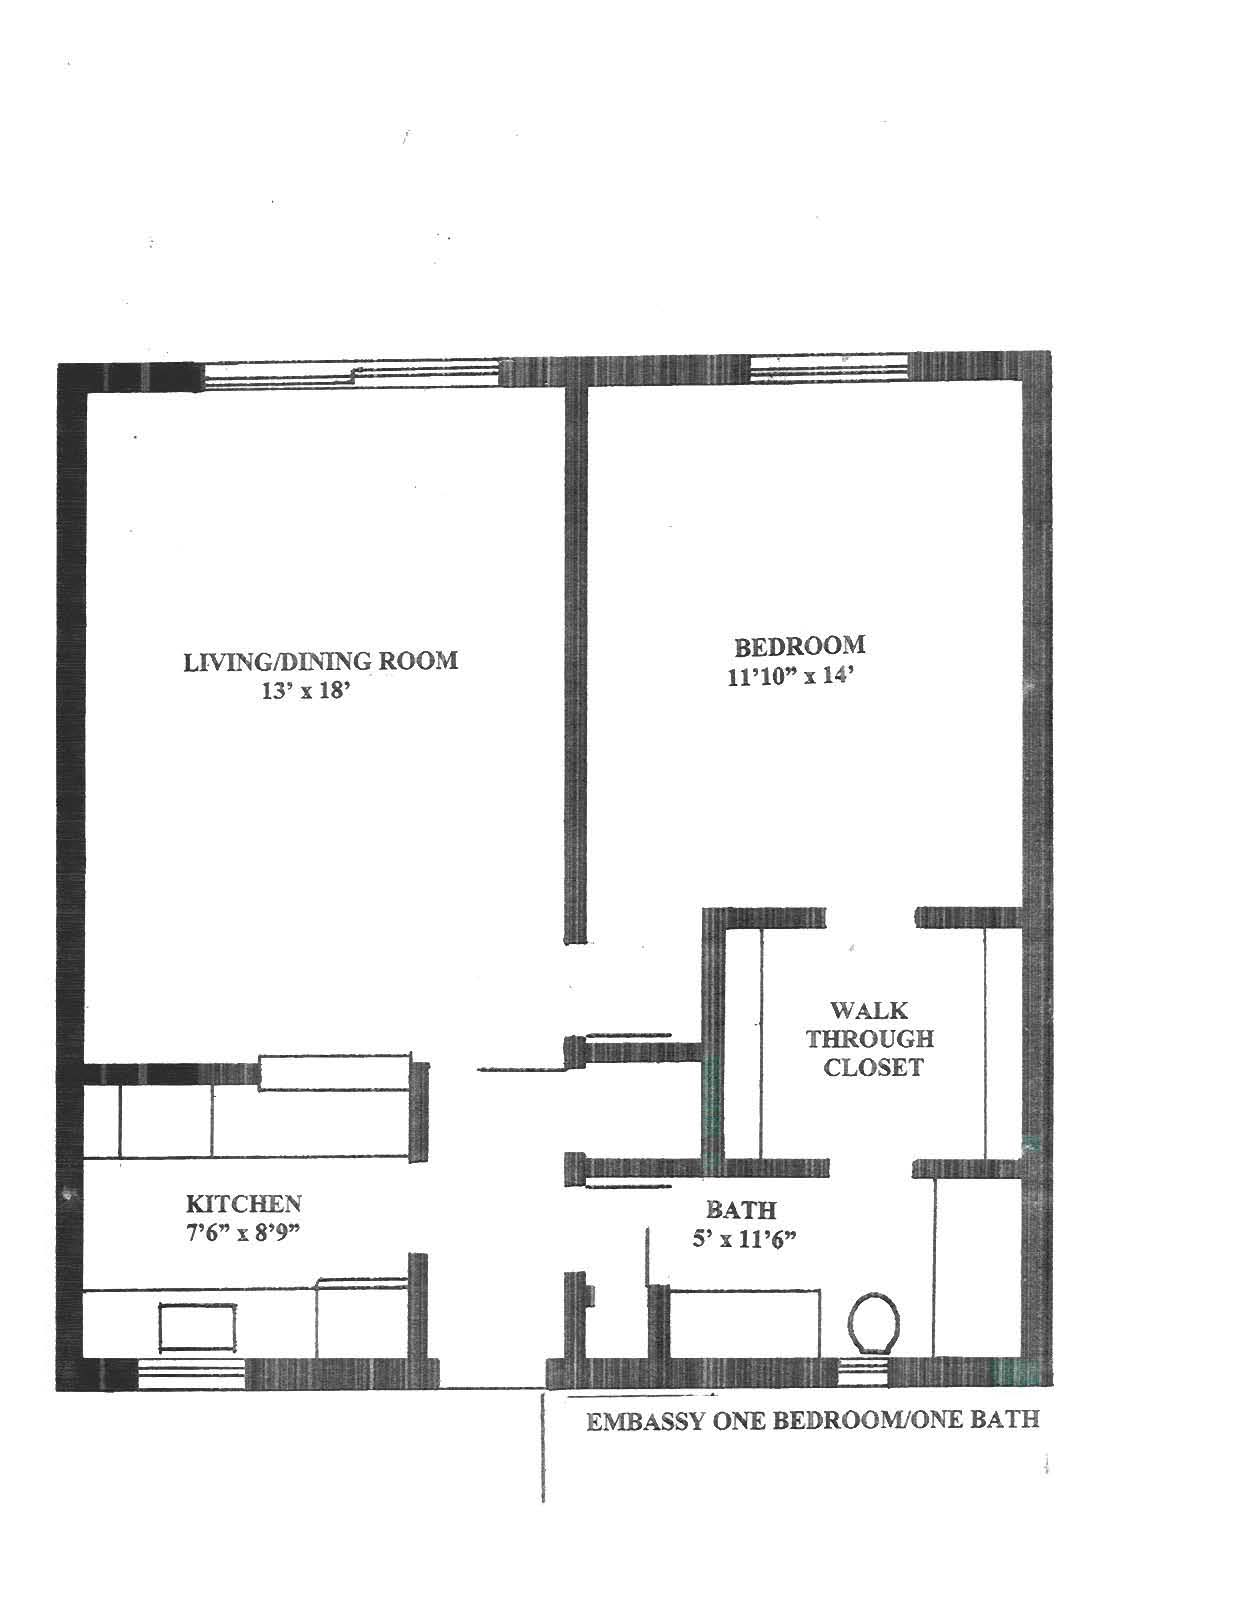 0 1 2 bedroom apartments for rent in tampa fl westshore embassy 1a none available located at embassy apartments